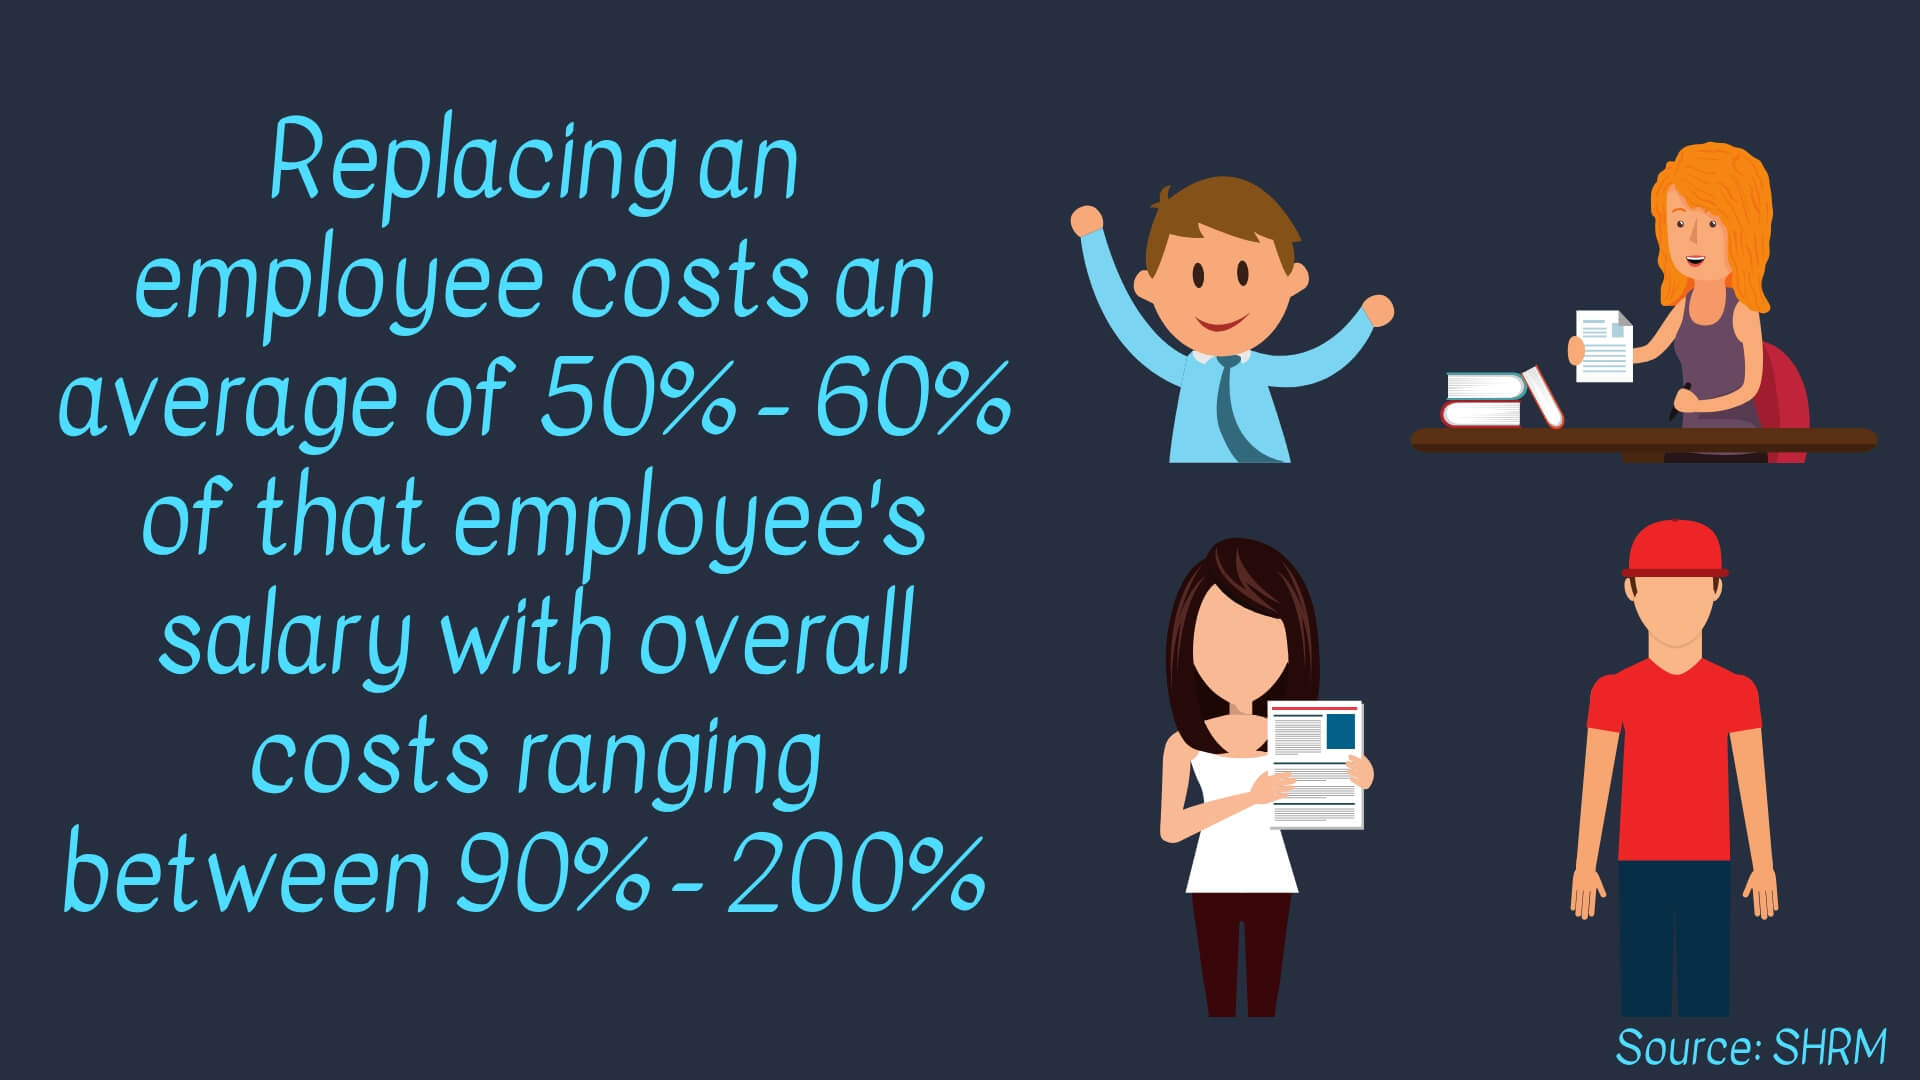 Replacing an employee costs an average of 50% - 60% of that employee's salary with overall costs ranging between 90% - 200% Infographic